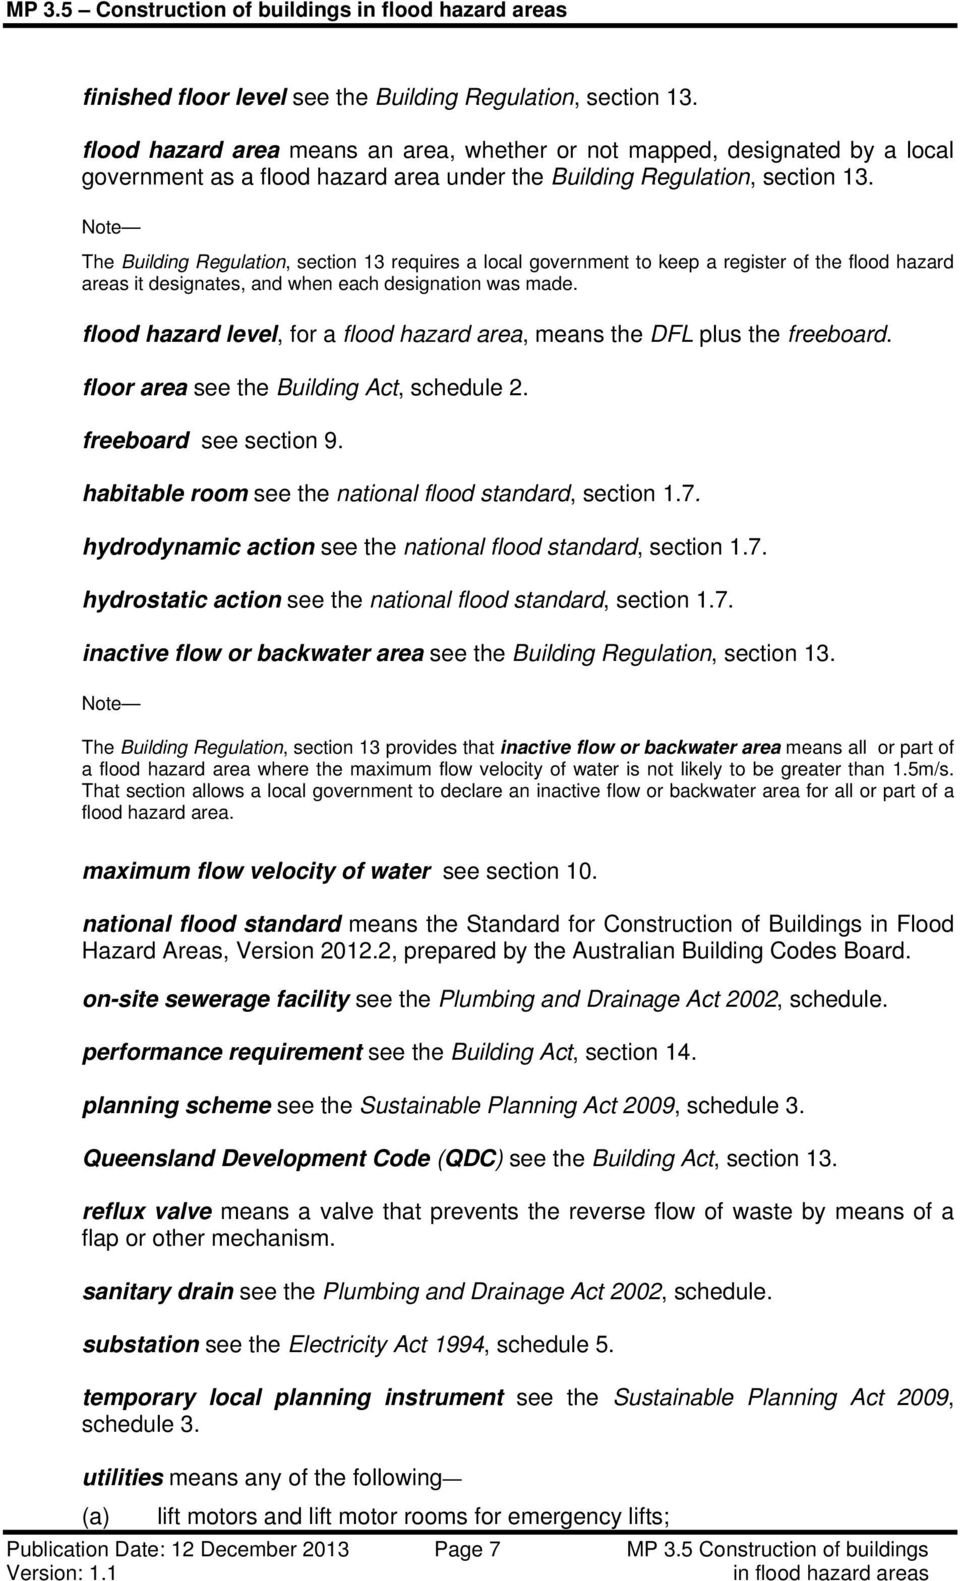 The Building Regulation, section 13 requires a local government to keep a register of the flood hazard areas it designates, and when each designation was made.